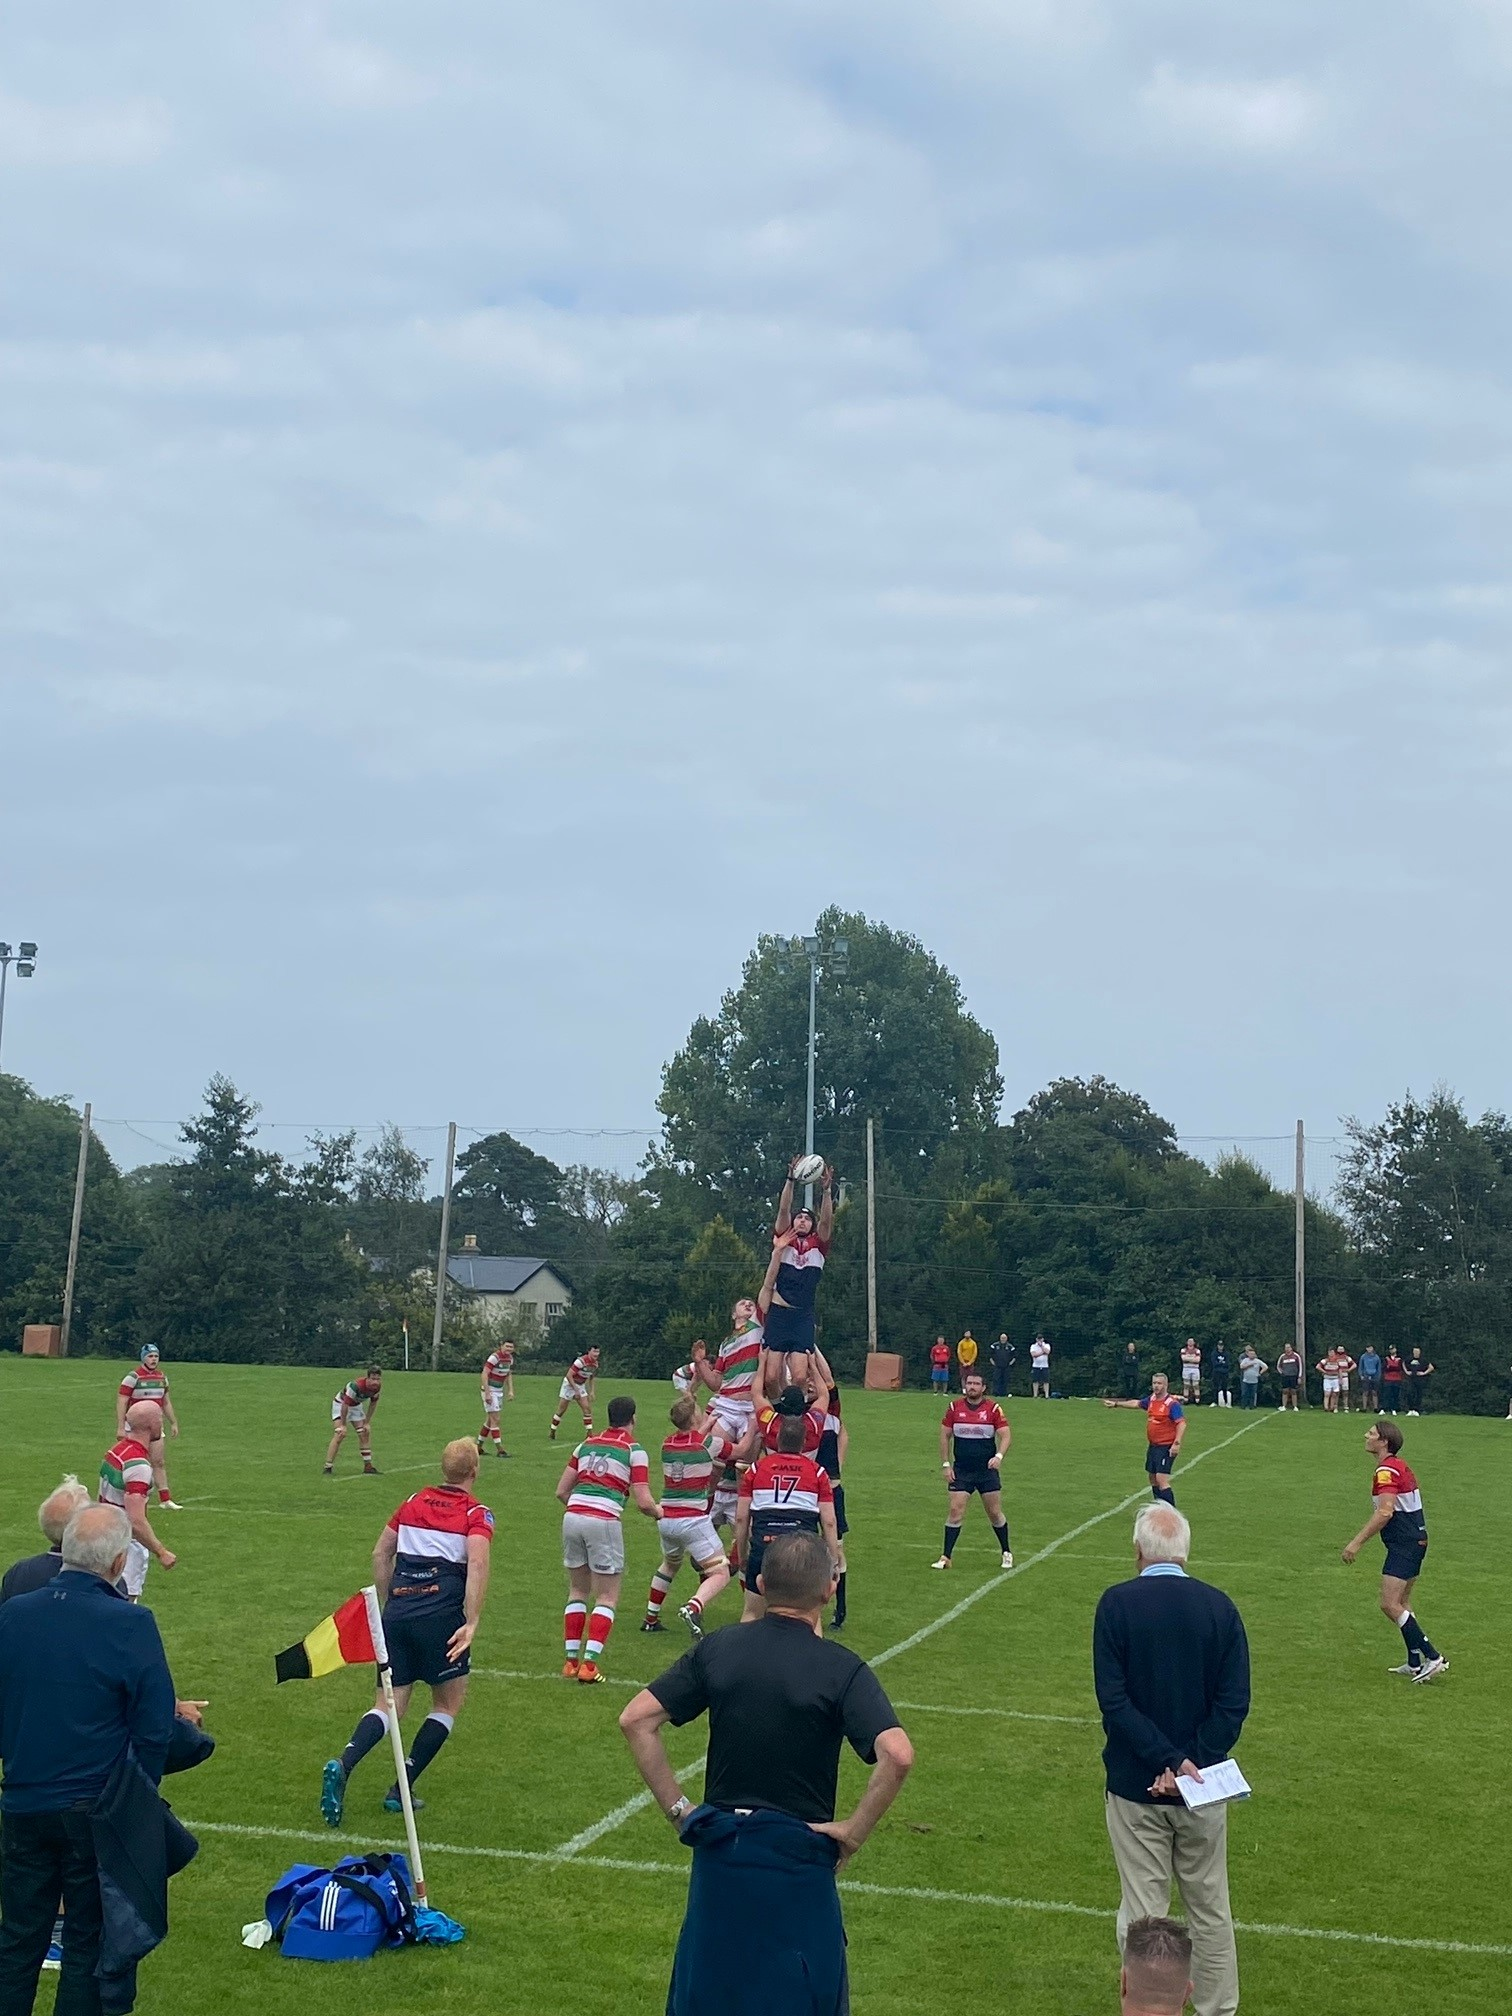 3rds-v-Bective-oconnell-cup-2021-3